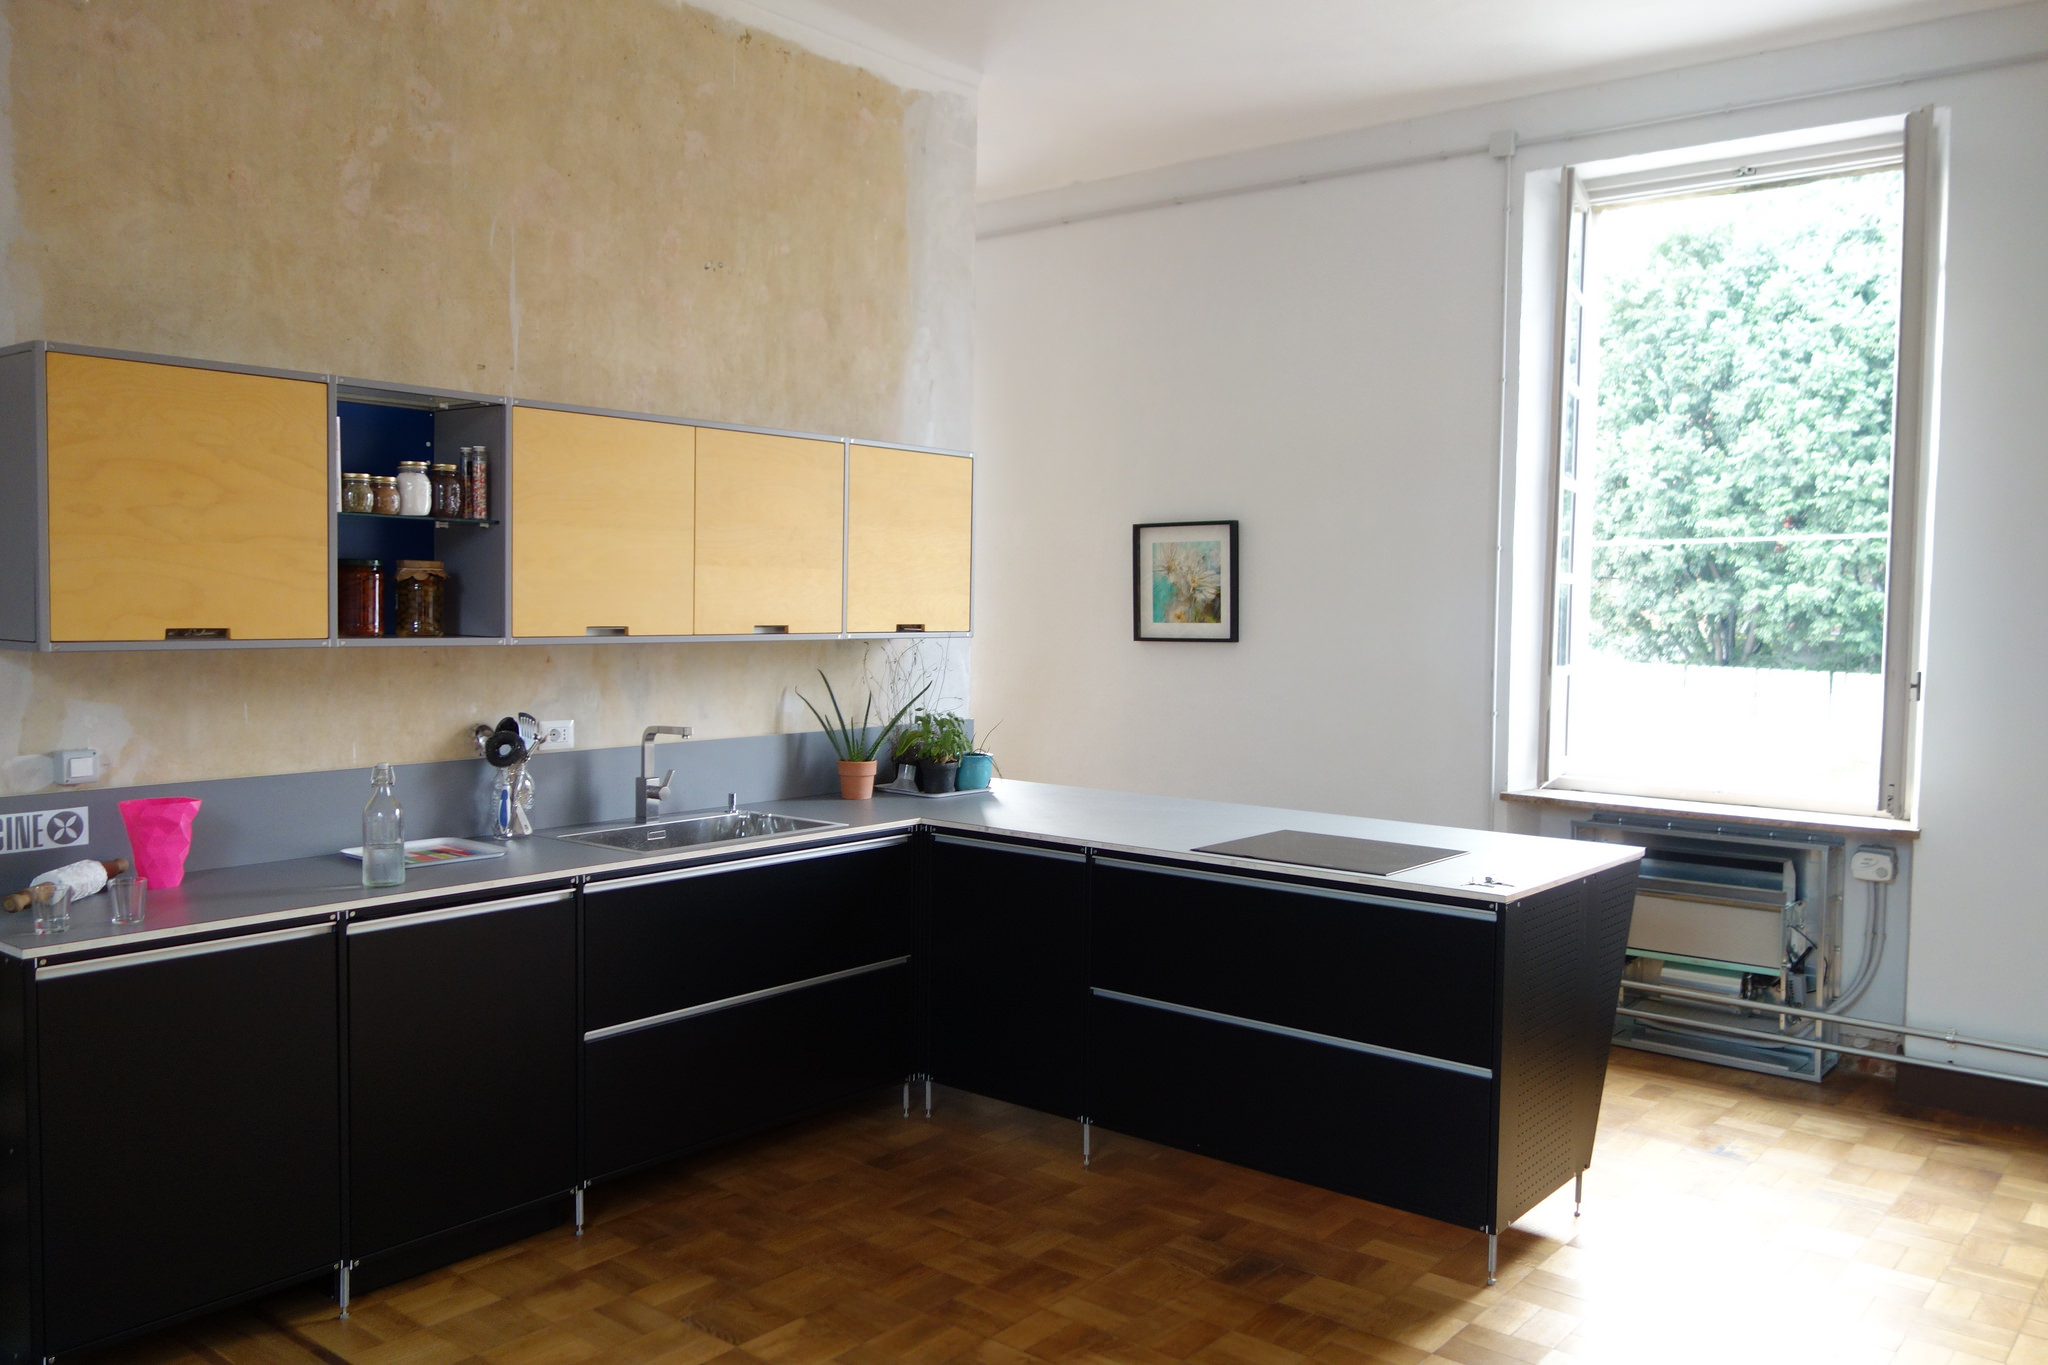 Kitchen of an Italian home